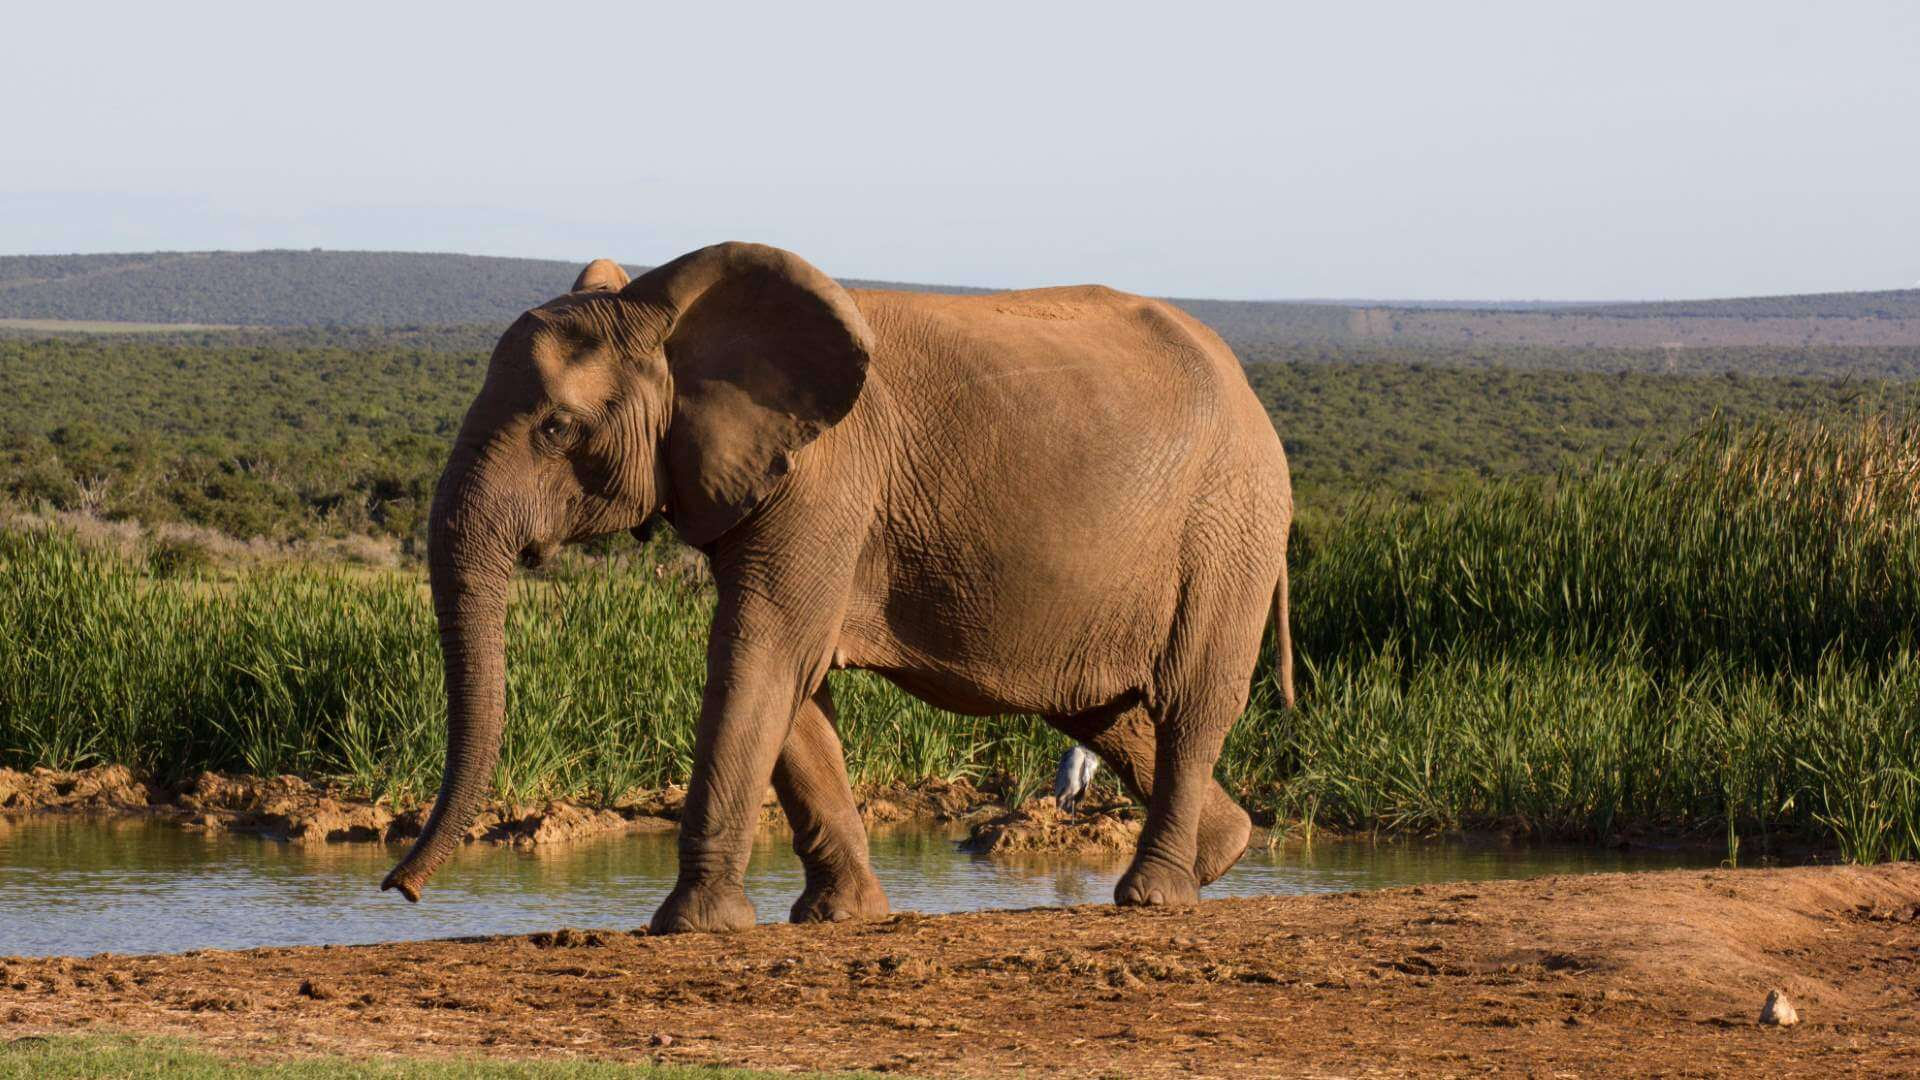 Elephant walking slowly, Addo Elephant Park, South Africa